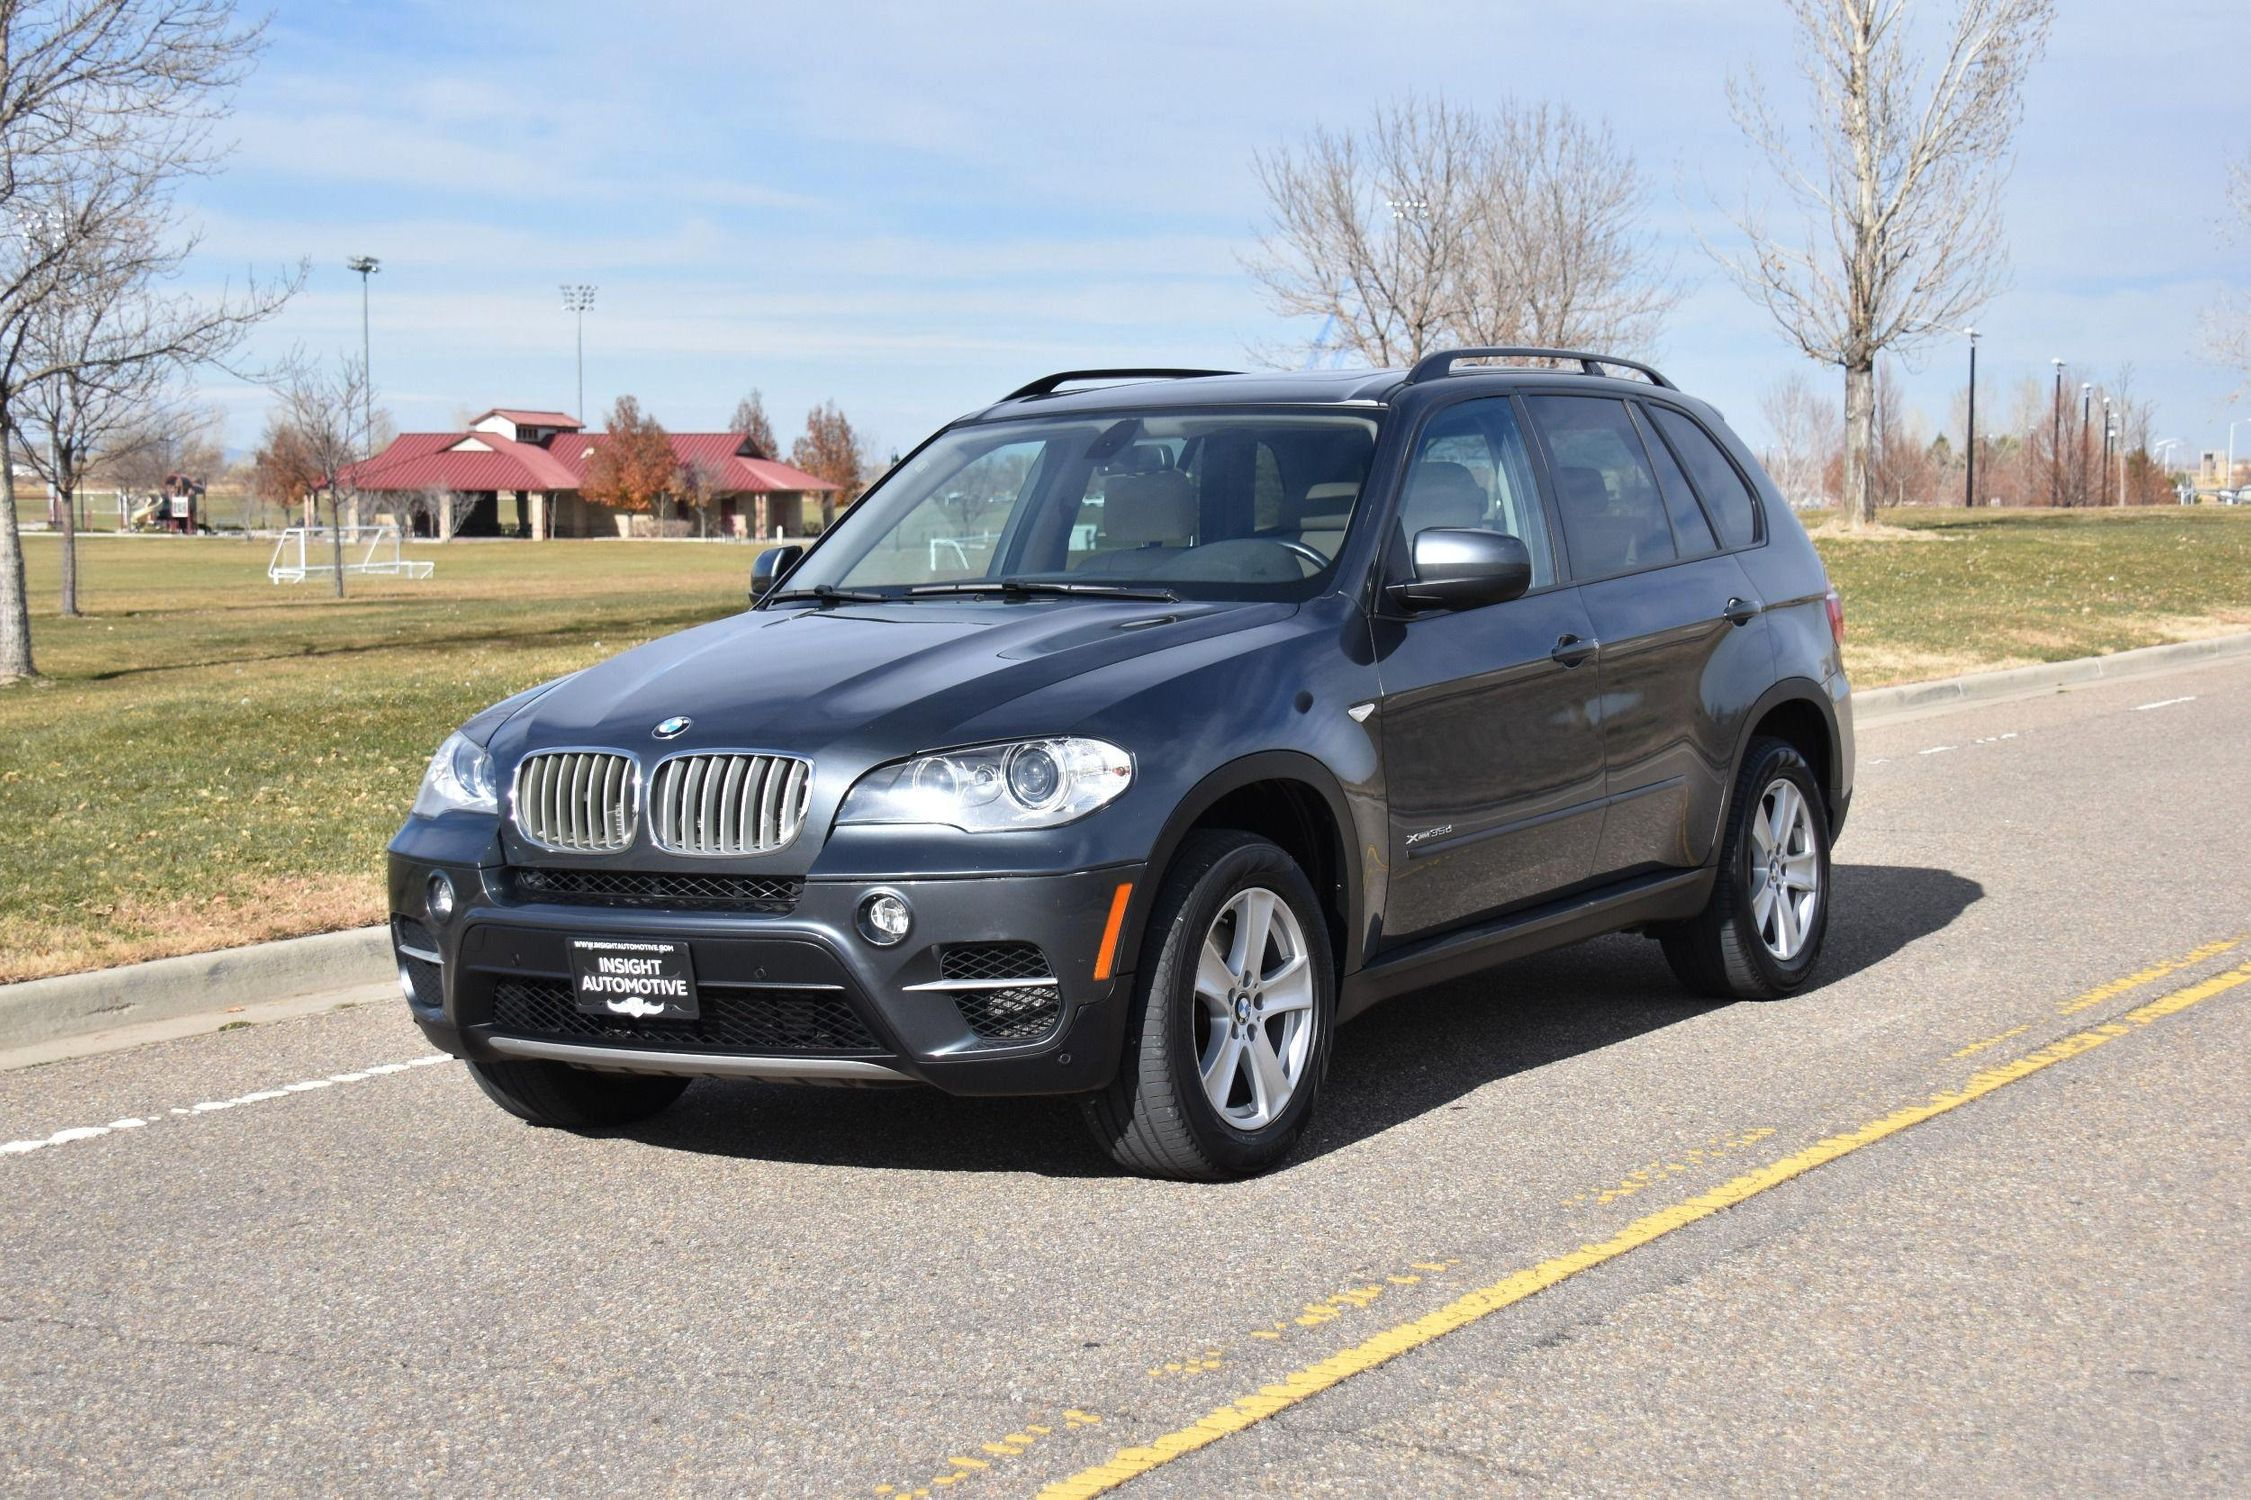 2012 Bmw X5 Xdrive35d Insight Automotive